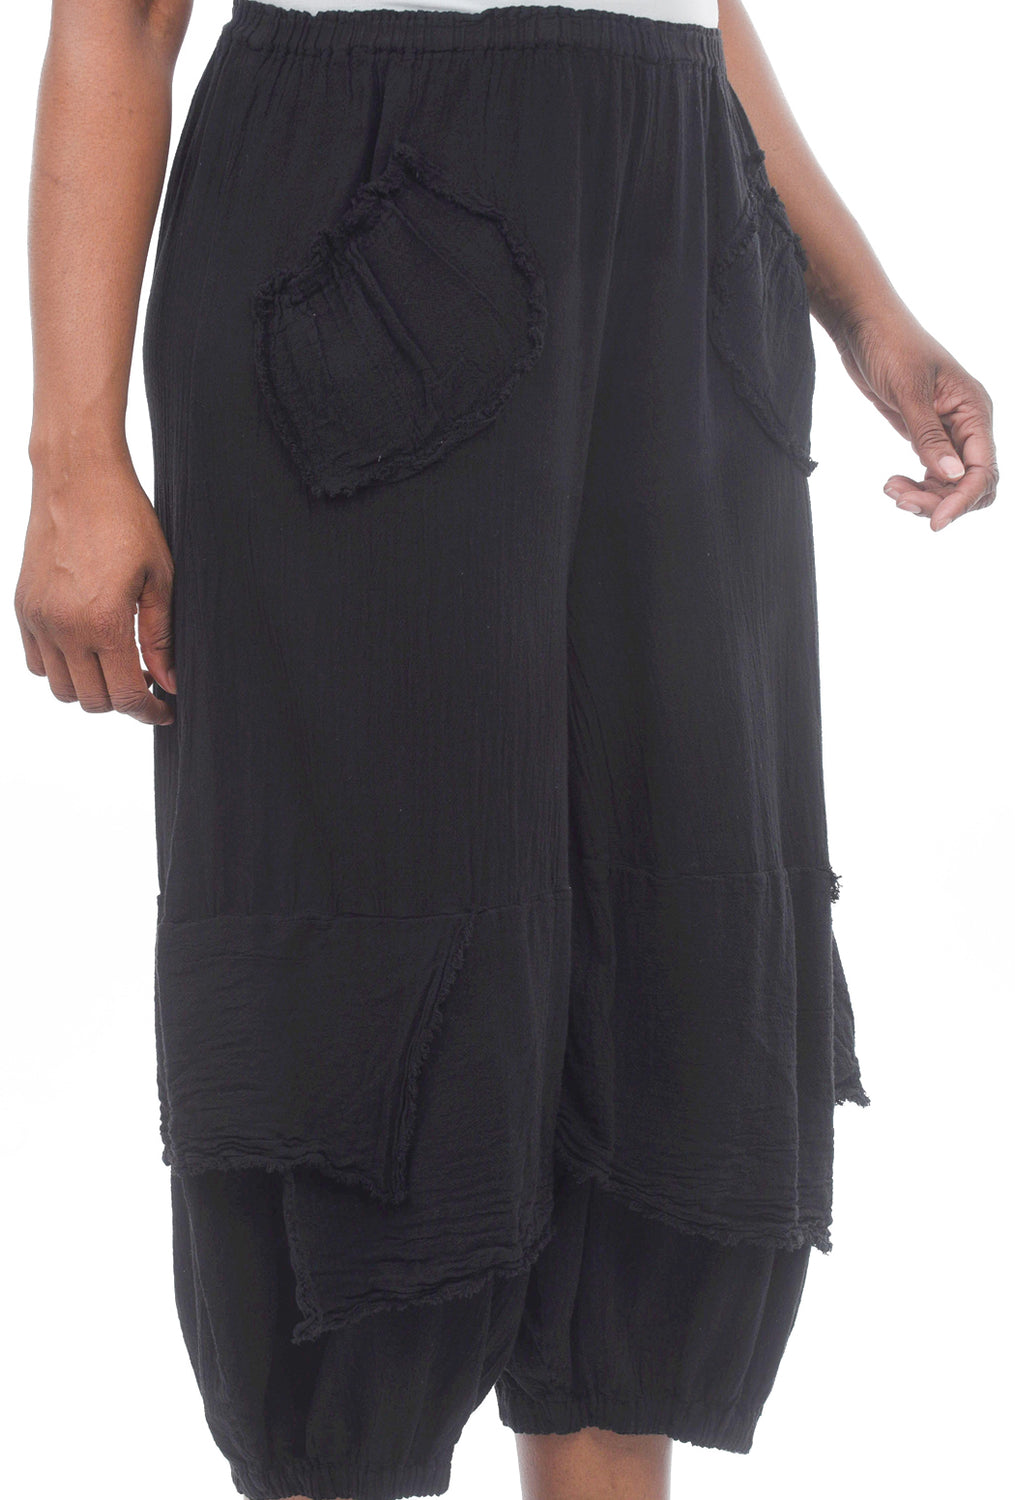 Oh My Gauze Guchi Pocket Pants, Black One Size Black